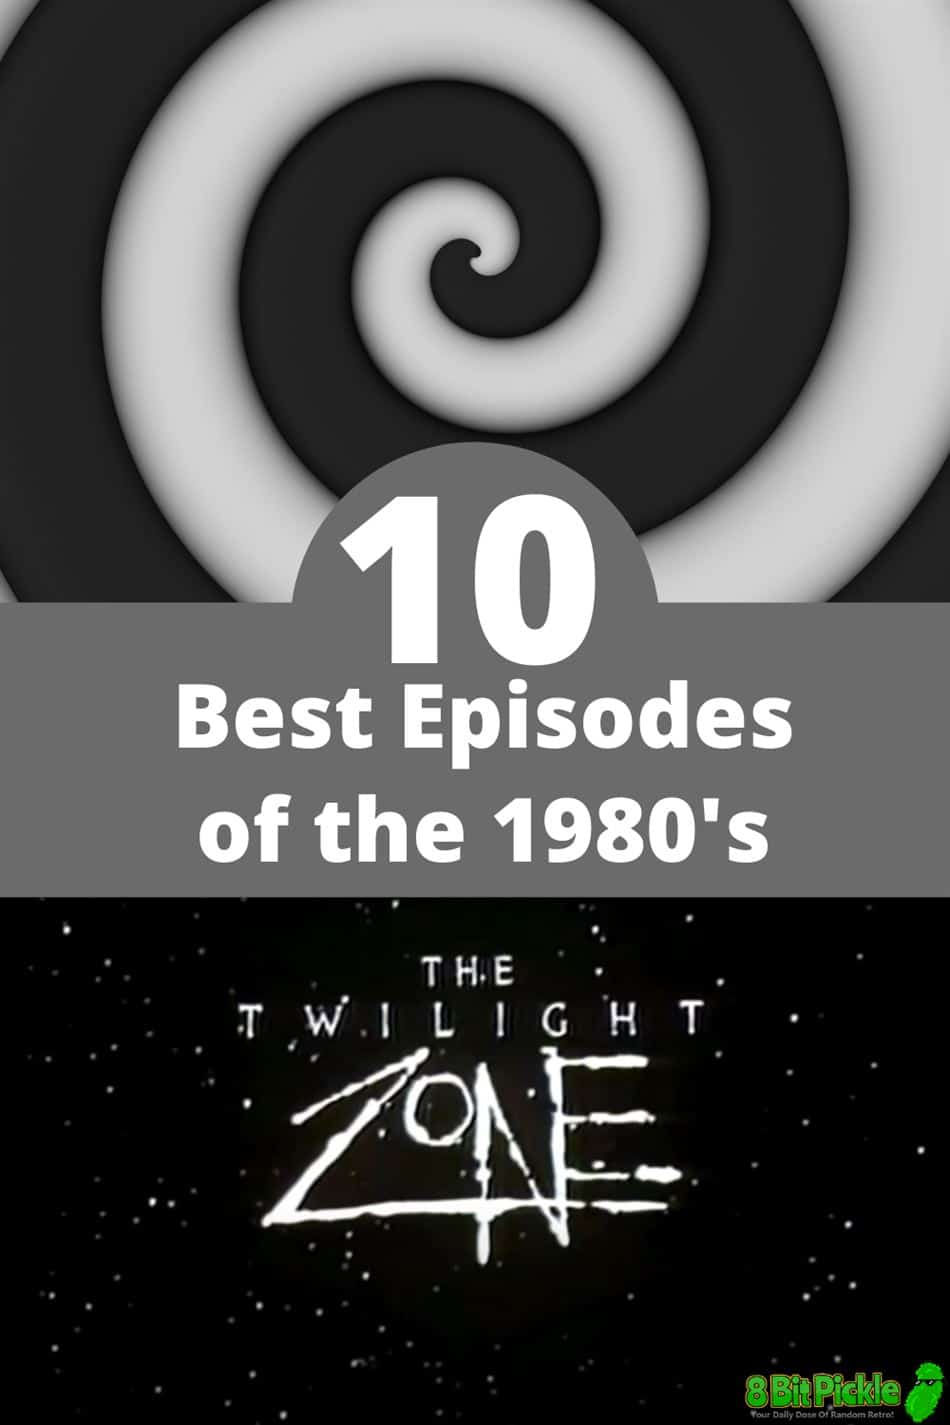 10 Best Episodes of the Twilight Zone